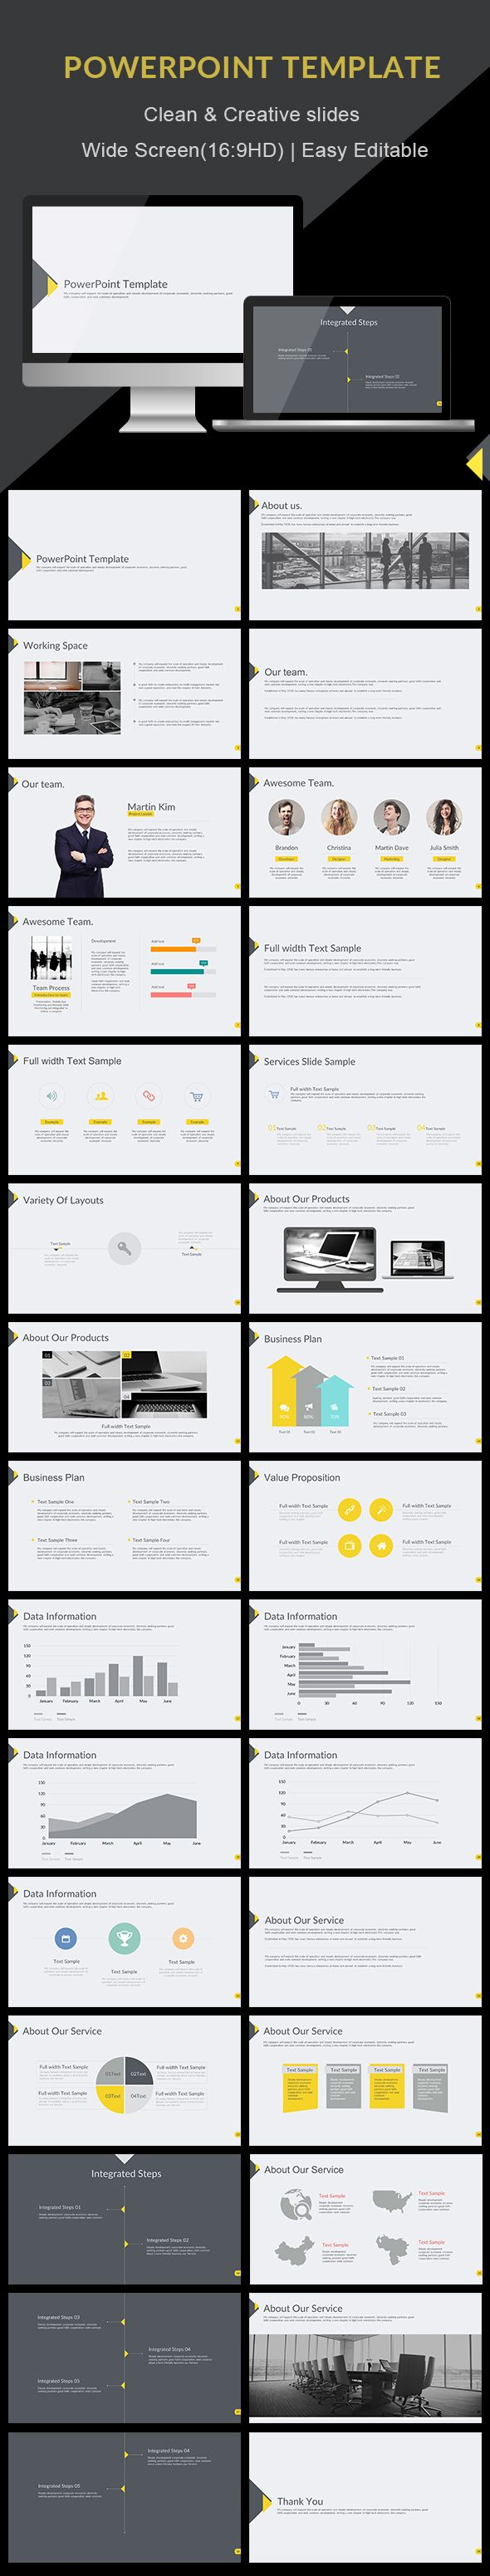 31 best Blue PowerPoint Templates images on Pinterest | Ppt template ...